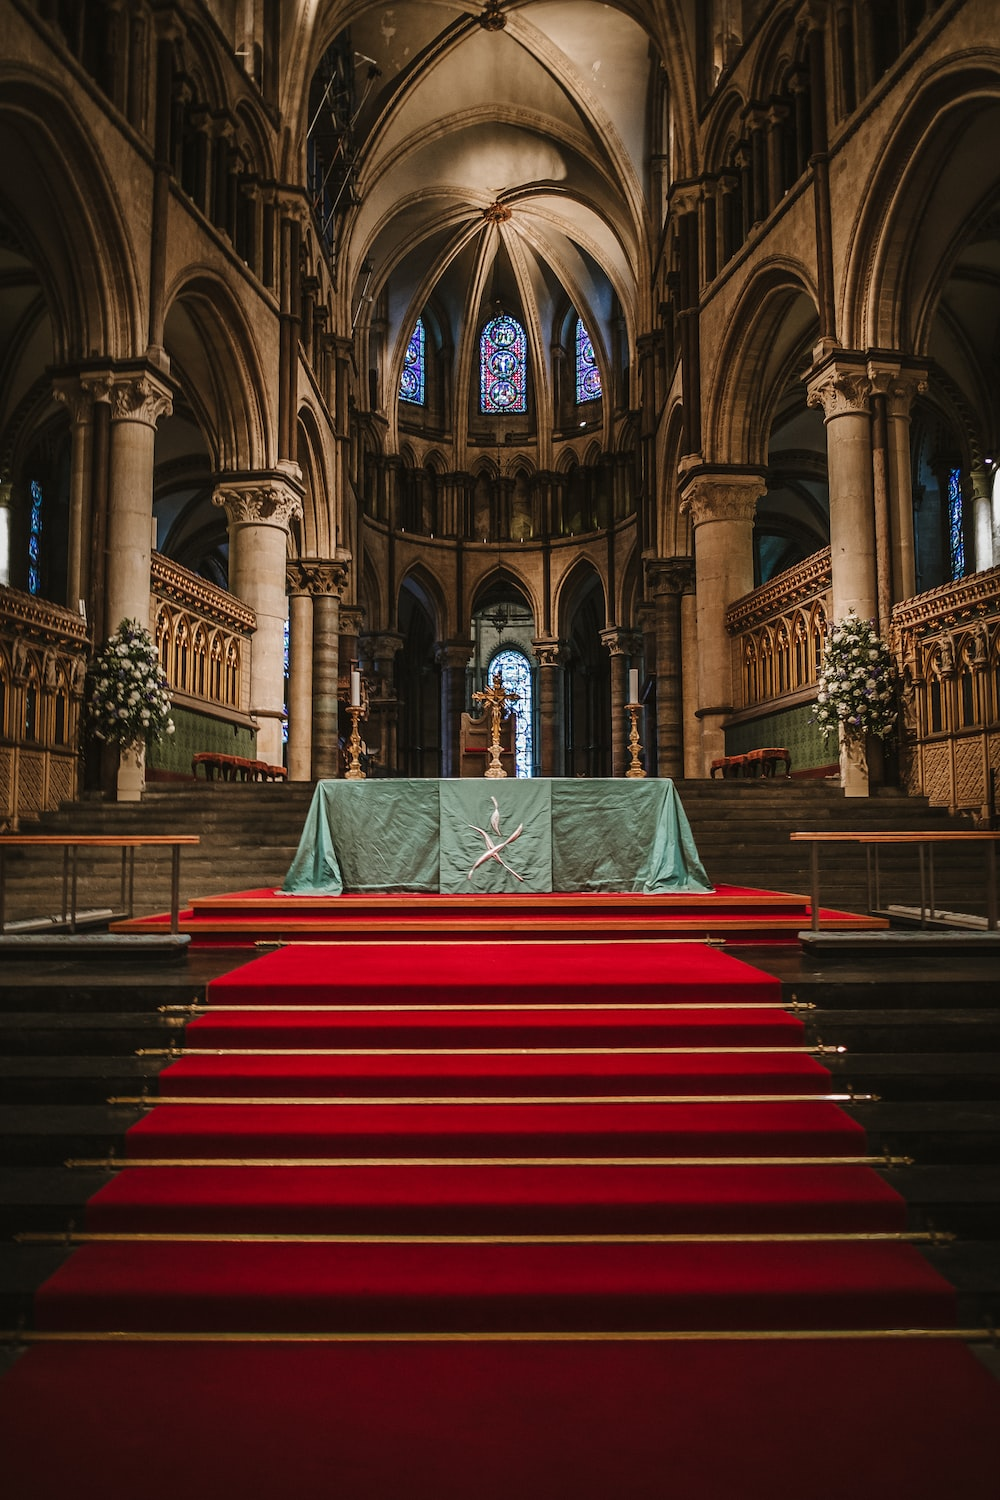 photo of interior of cathedral